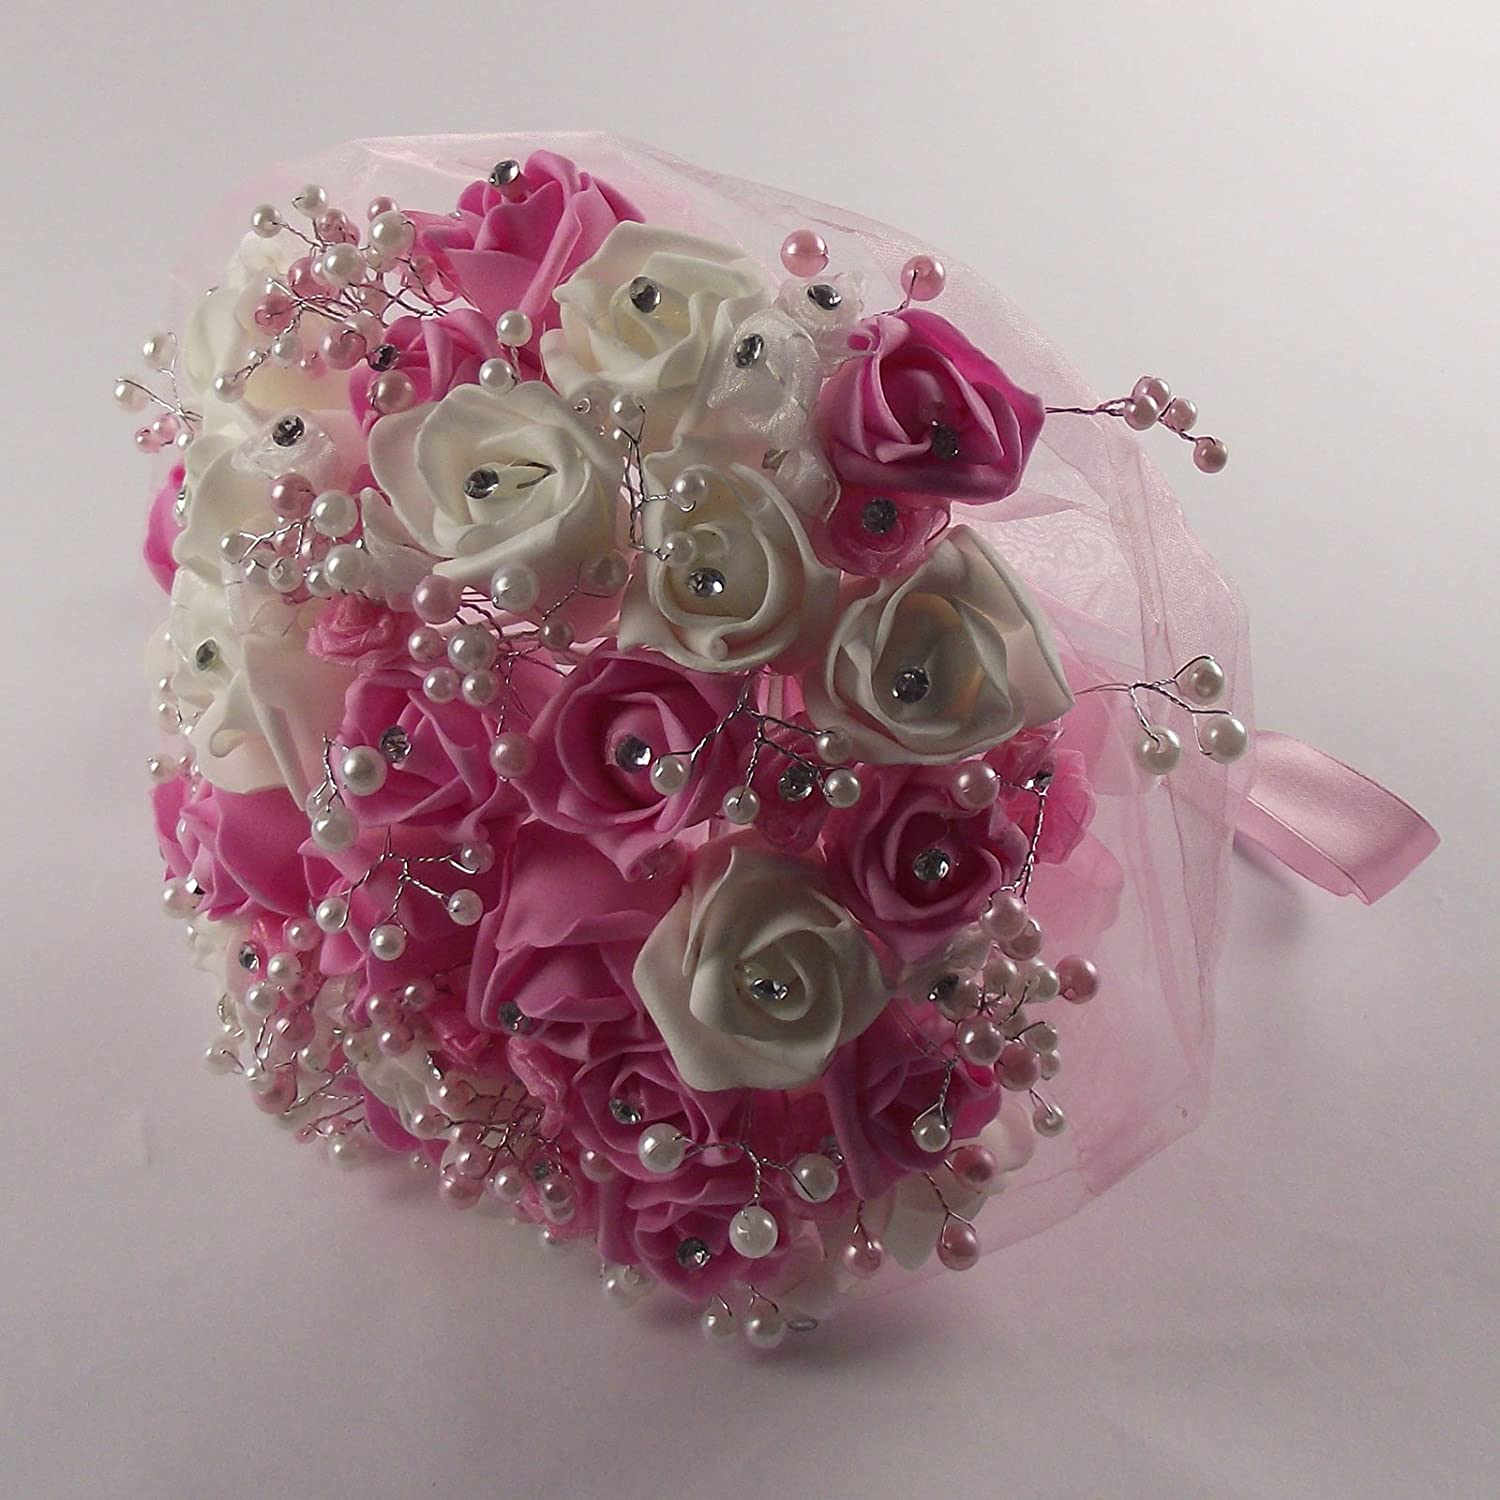 Wedding accessories pearls flowers pearls - Foam Rose Bud Diamante And Pearl Bridal Bouquet Artificial Wedding Flowers Pink Amazon Co Uk Kitchen Home